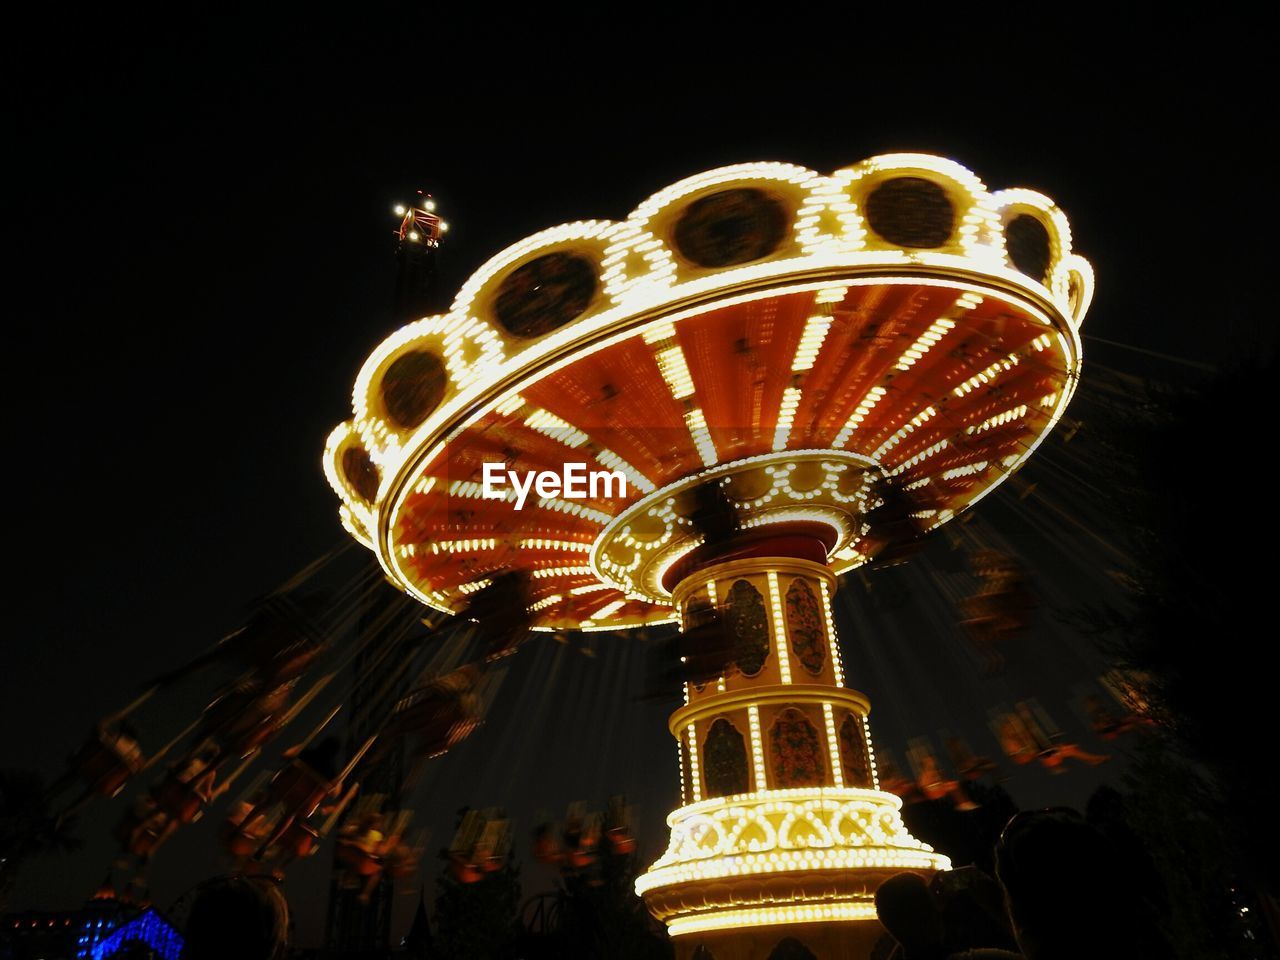 night, amusement park, arts culture and entertainment, low angle view, amusement park ride, illuminated, leisure activity, large group of people, enjoyment, outdoors, blurred motion, men, real people, motion, ferris wheel, women, clear sky, sky, carousel, people